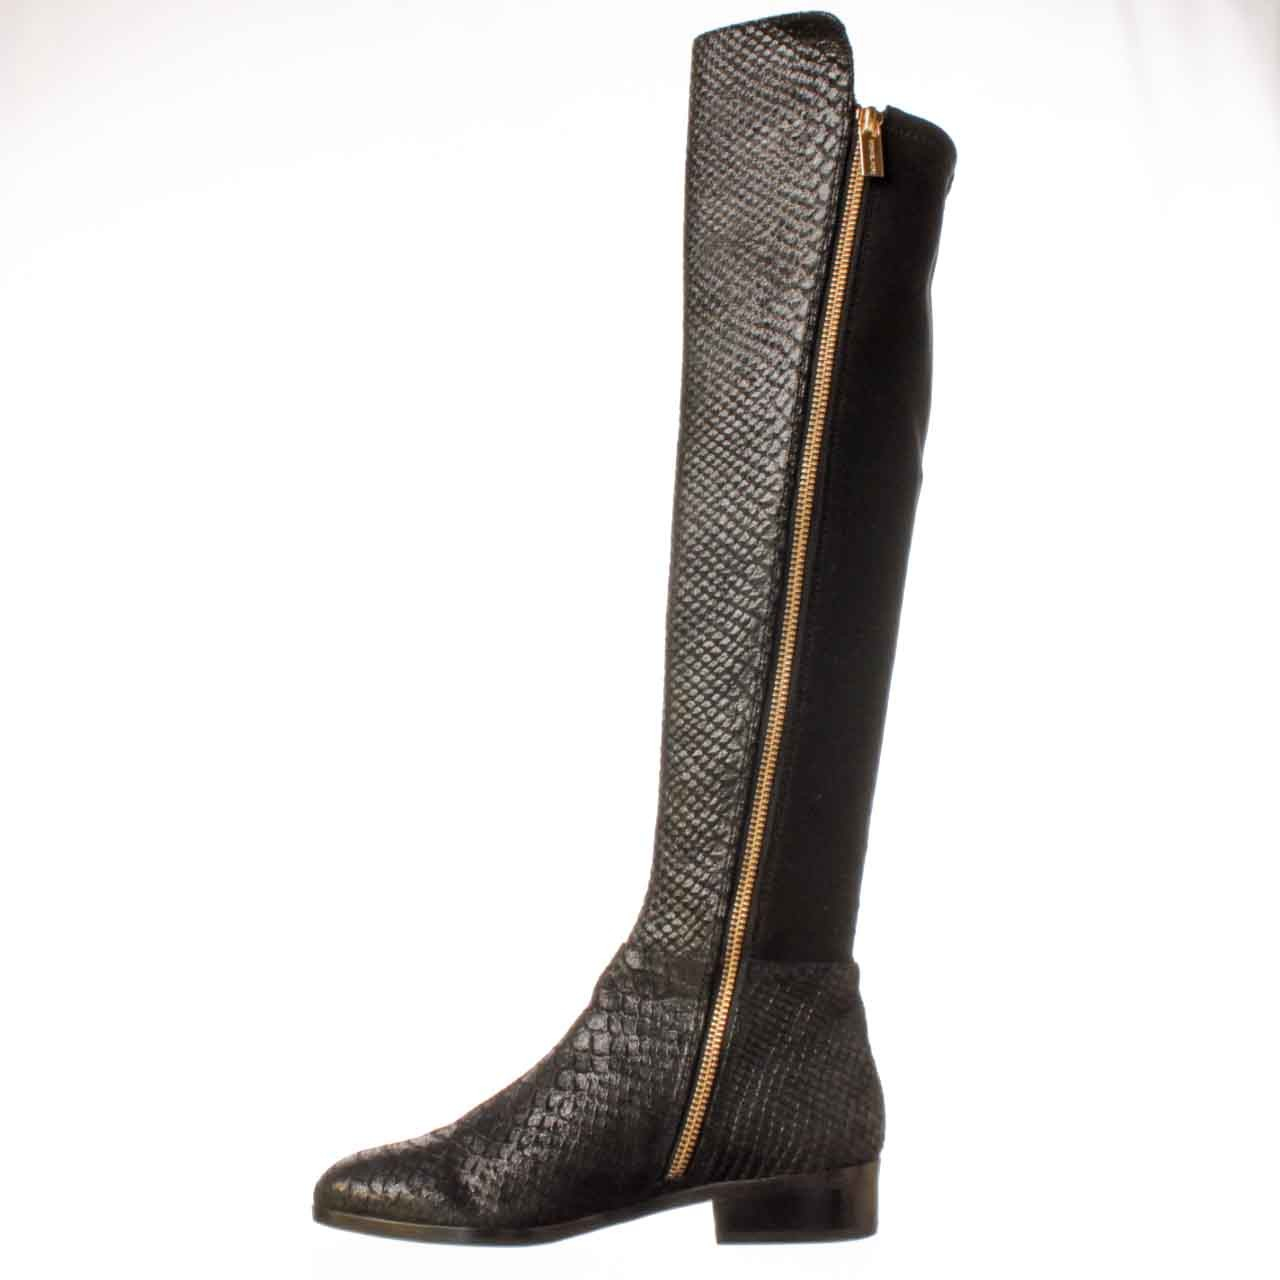 michael kors michael bromley tall boot riding boot in black lyst. Black Bedroom Furniture Sets. Home Design Ideas